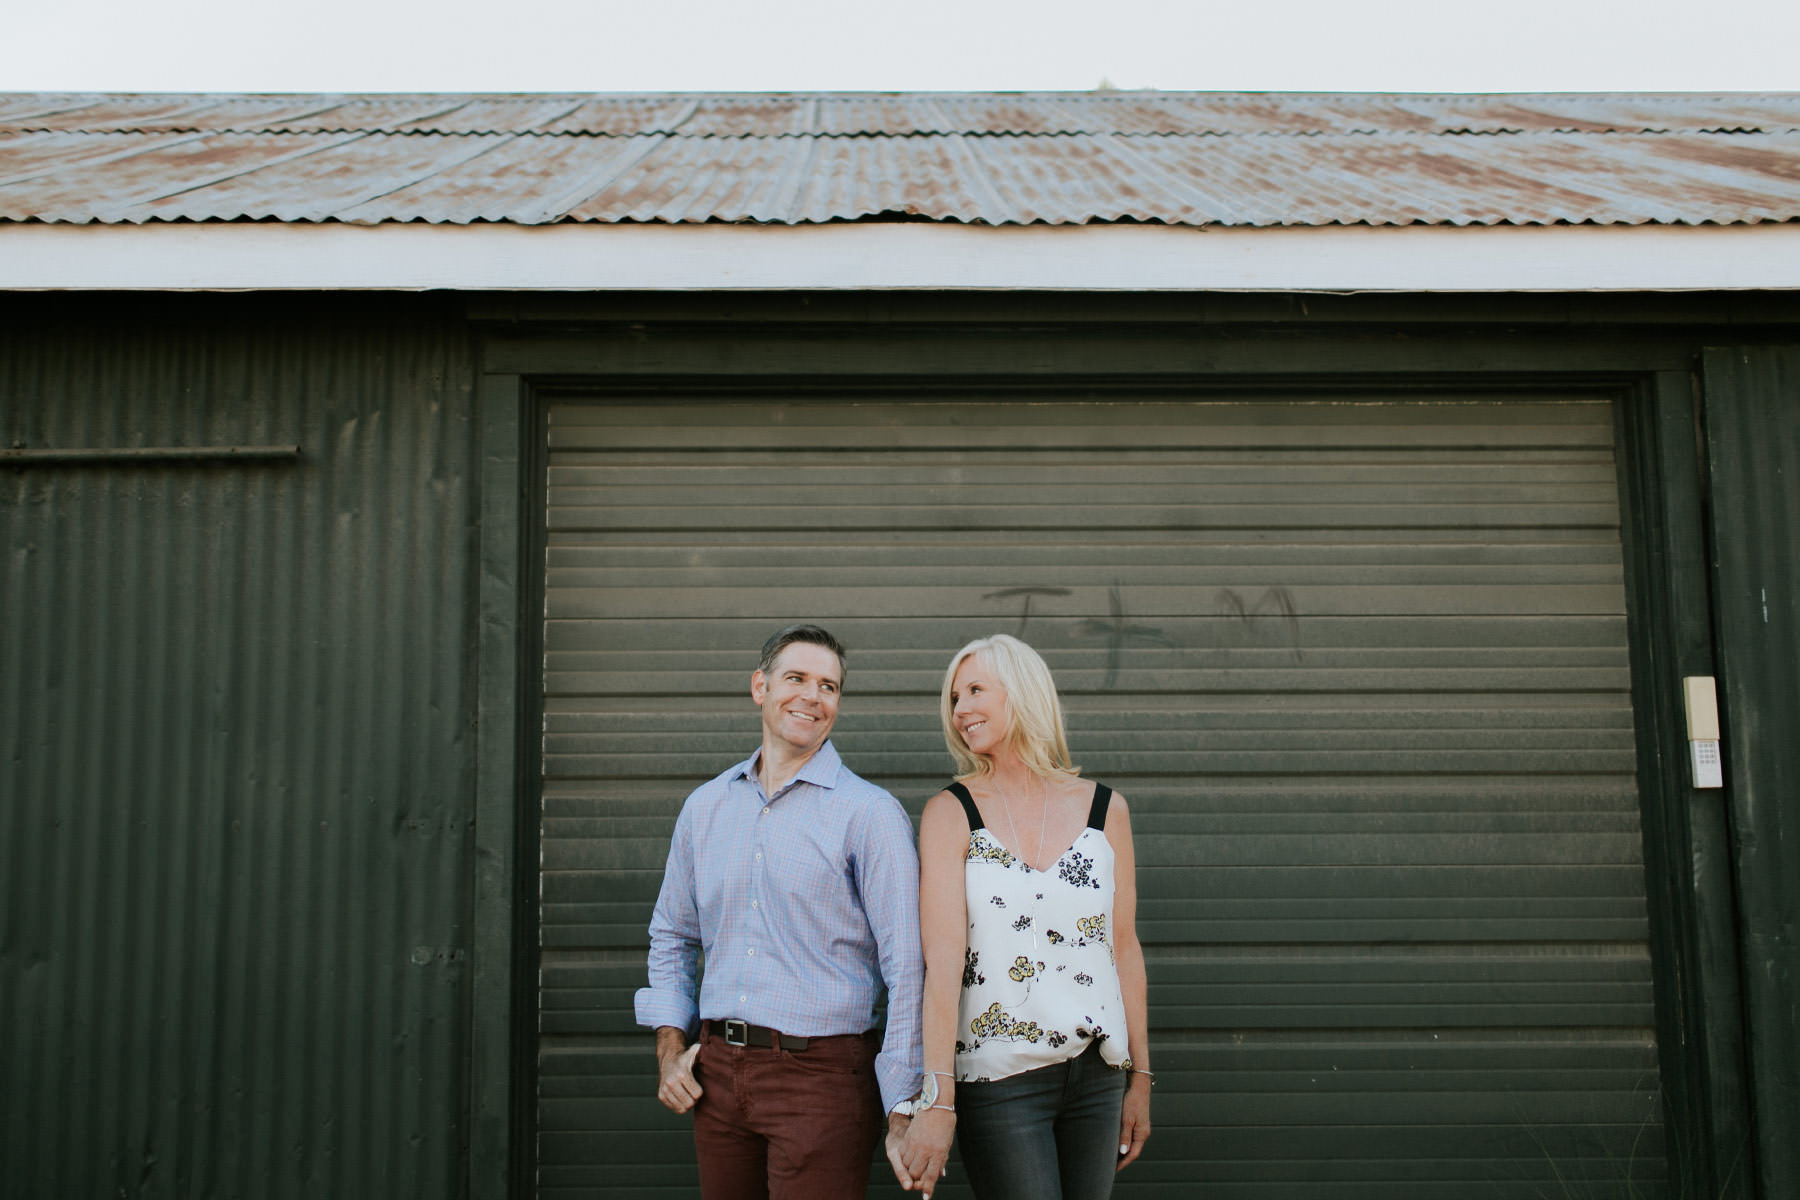 Engagement session at South Cedros Design District in Solana Beach